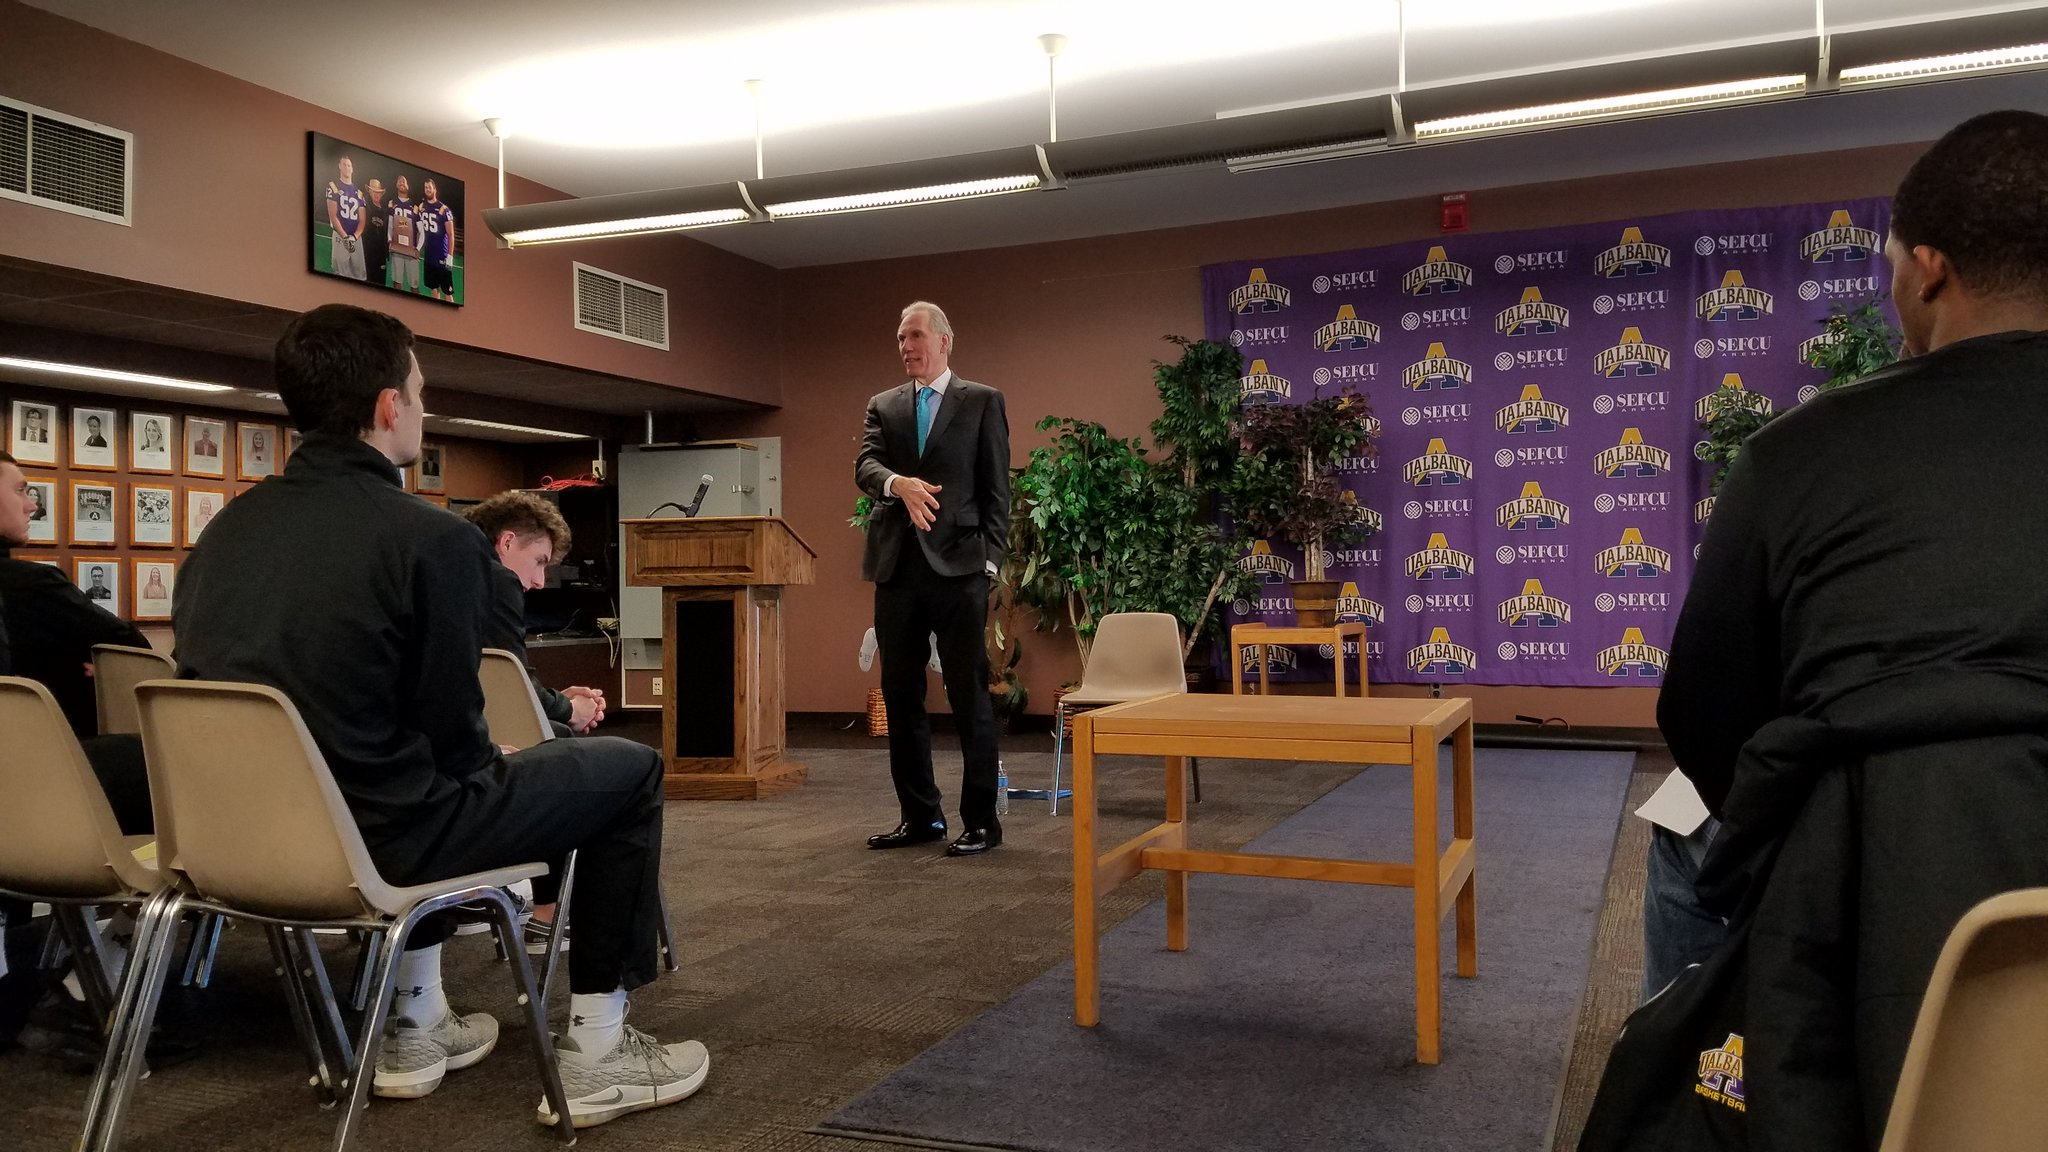 "UAlbany Basketball on Twitter: ""Today we welcomed Daniel P. Nolan, President and CEO of Hugh Johnson Advisors, LLC, to speak to the team, offering career ..."